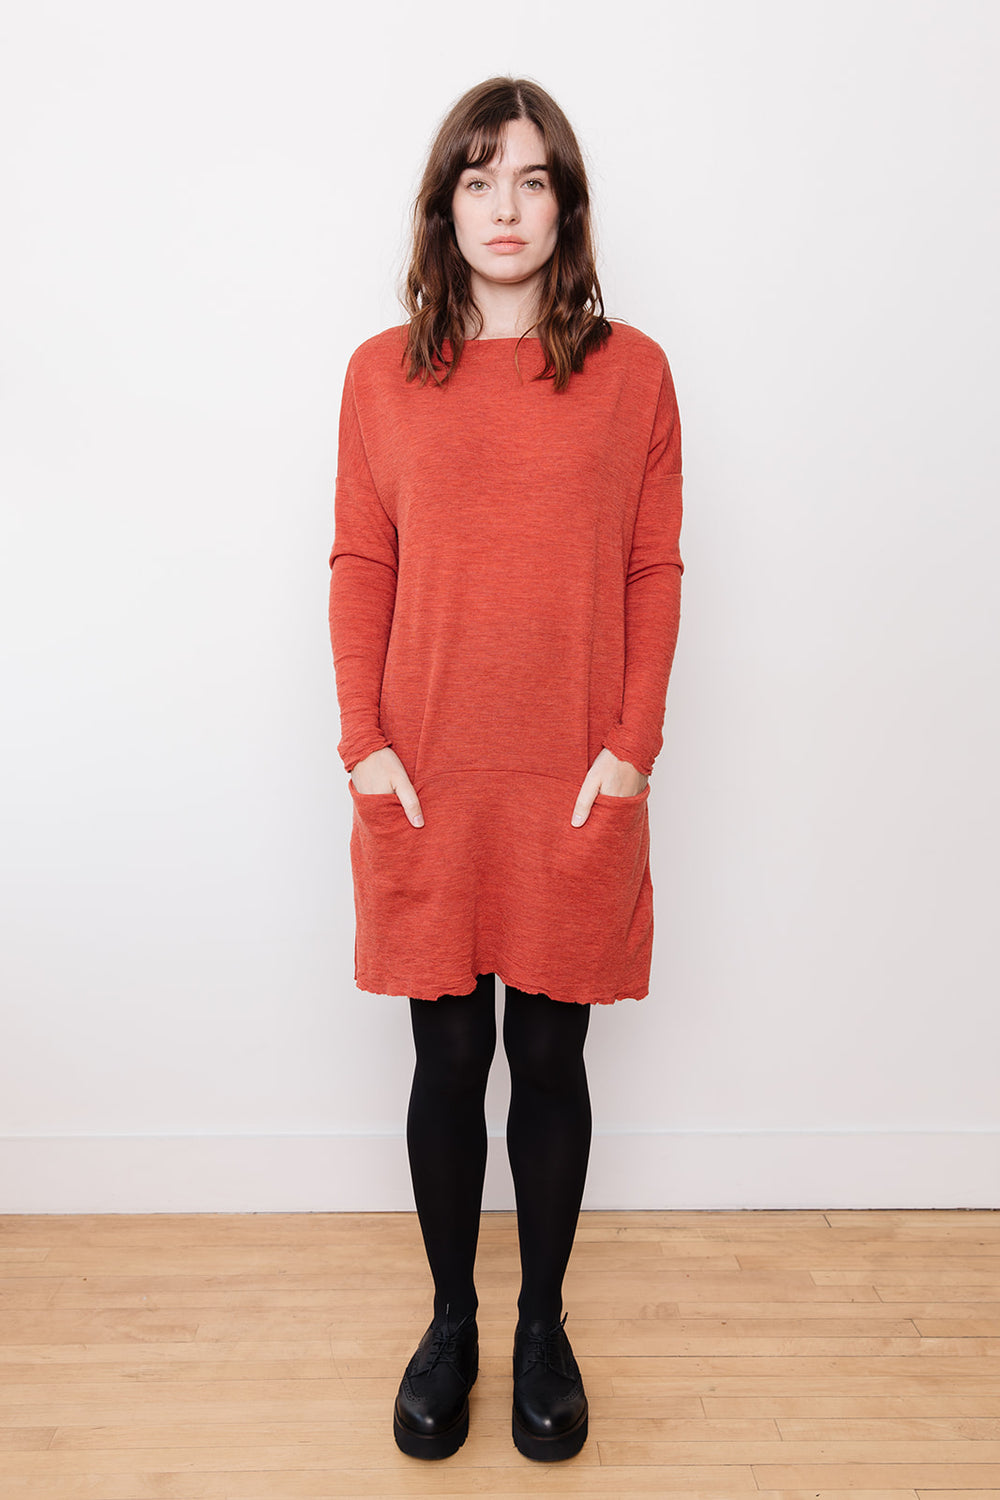 Tunic Dress with Pockets, Terracotta